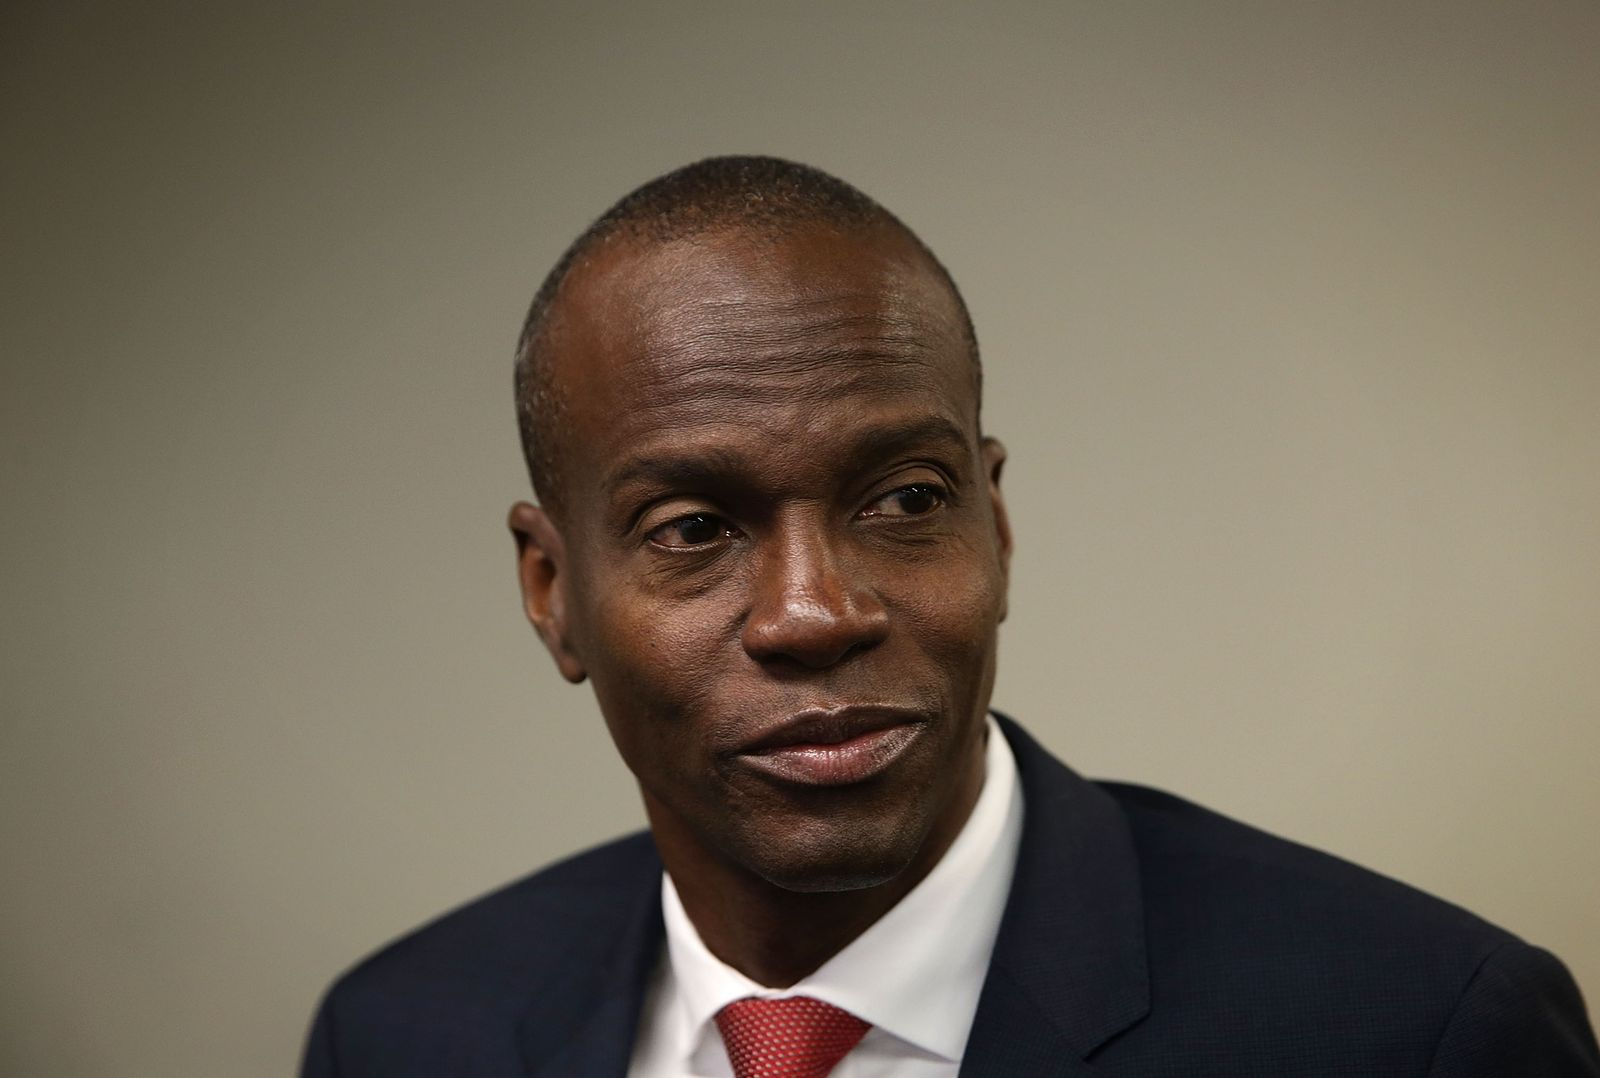 Haiti Presidential Candidate Jovenel Moise Holds News Conference In Washington